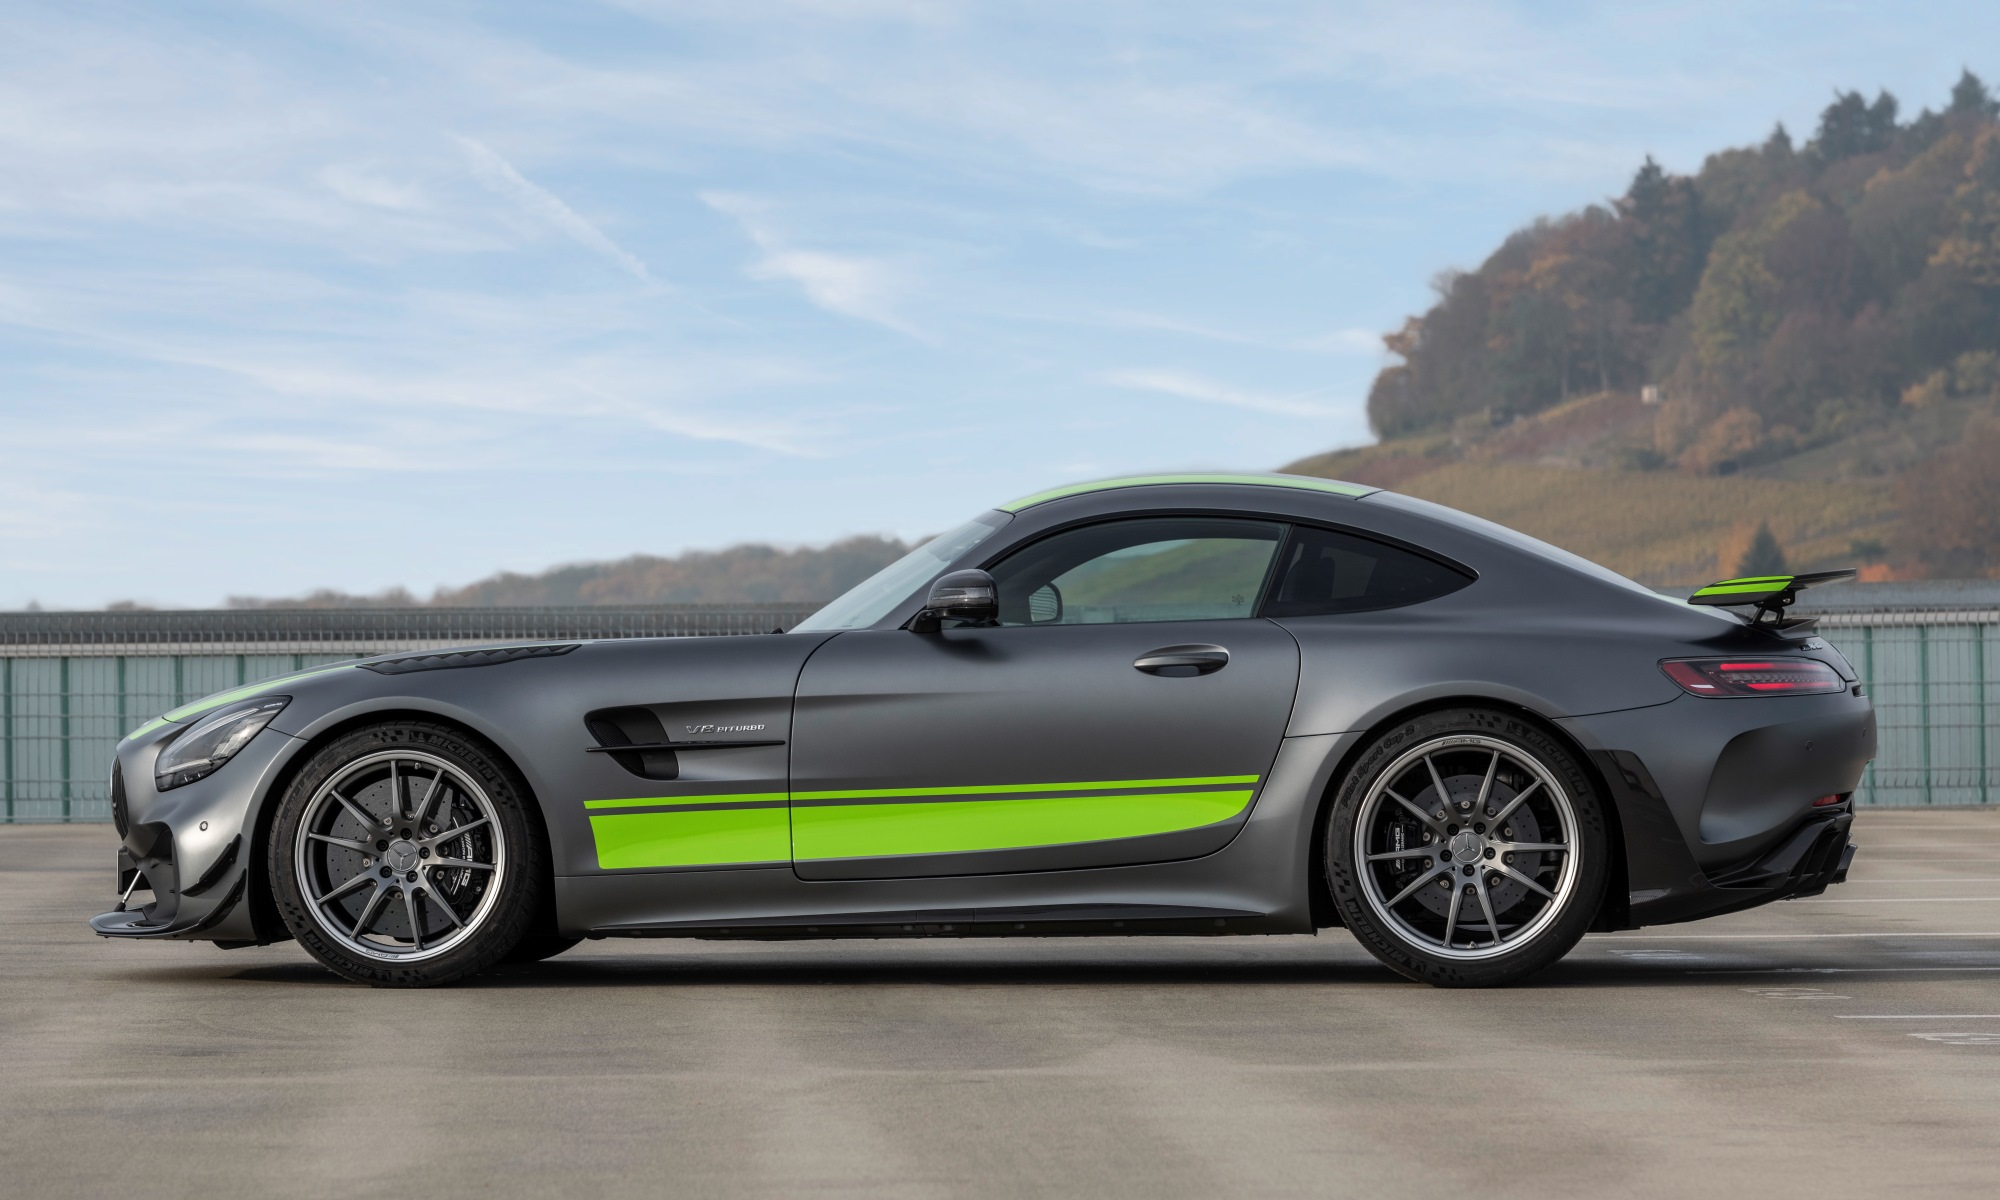 Mercedes-AMG GT R Pro profile